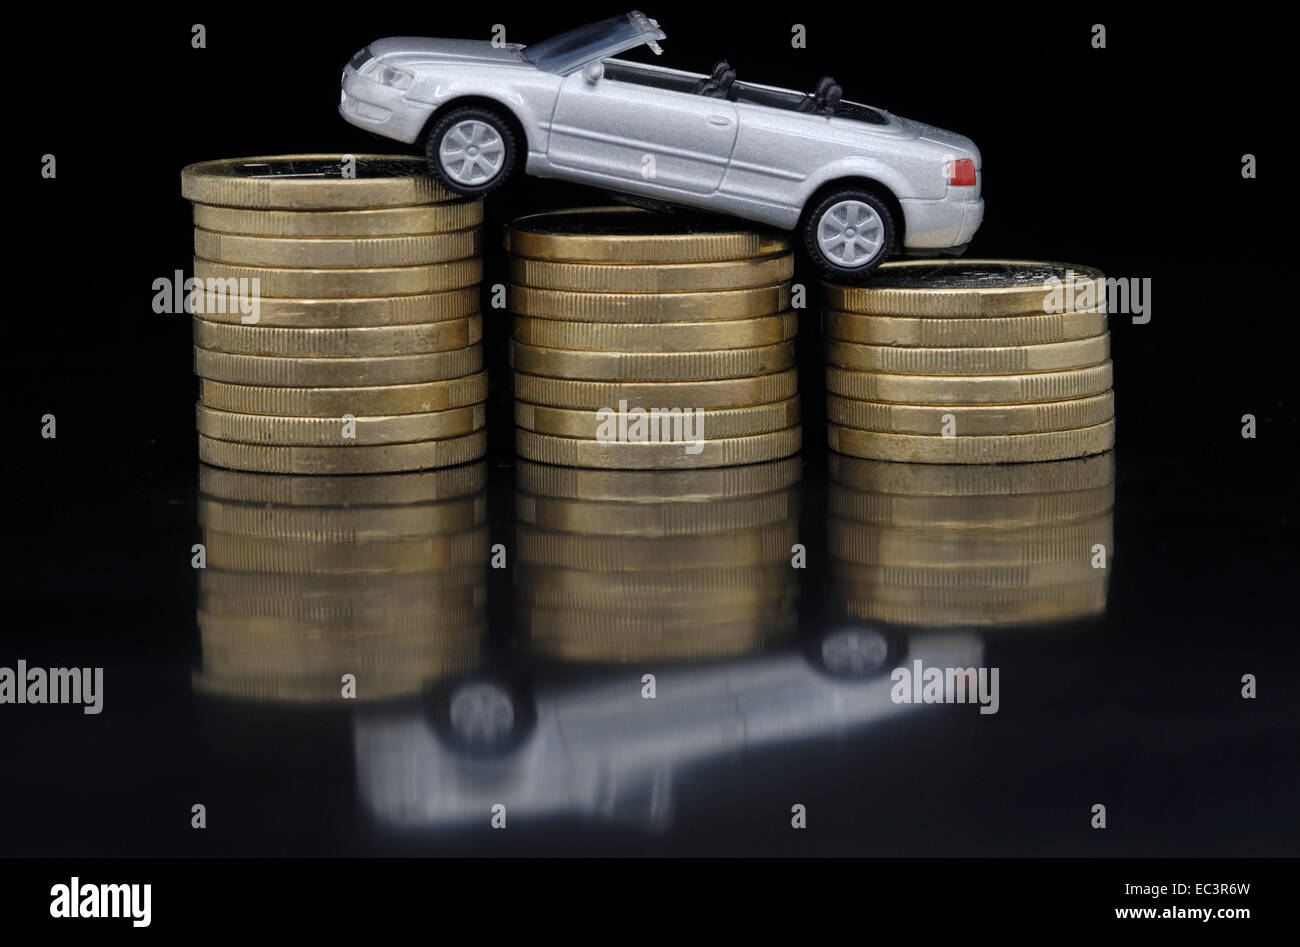 Car Costs - Stock Image